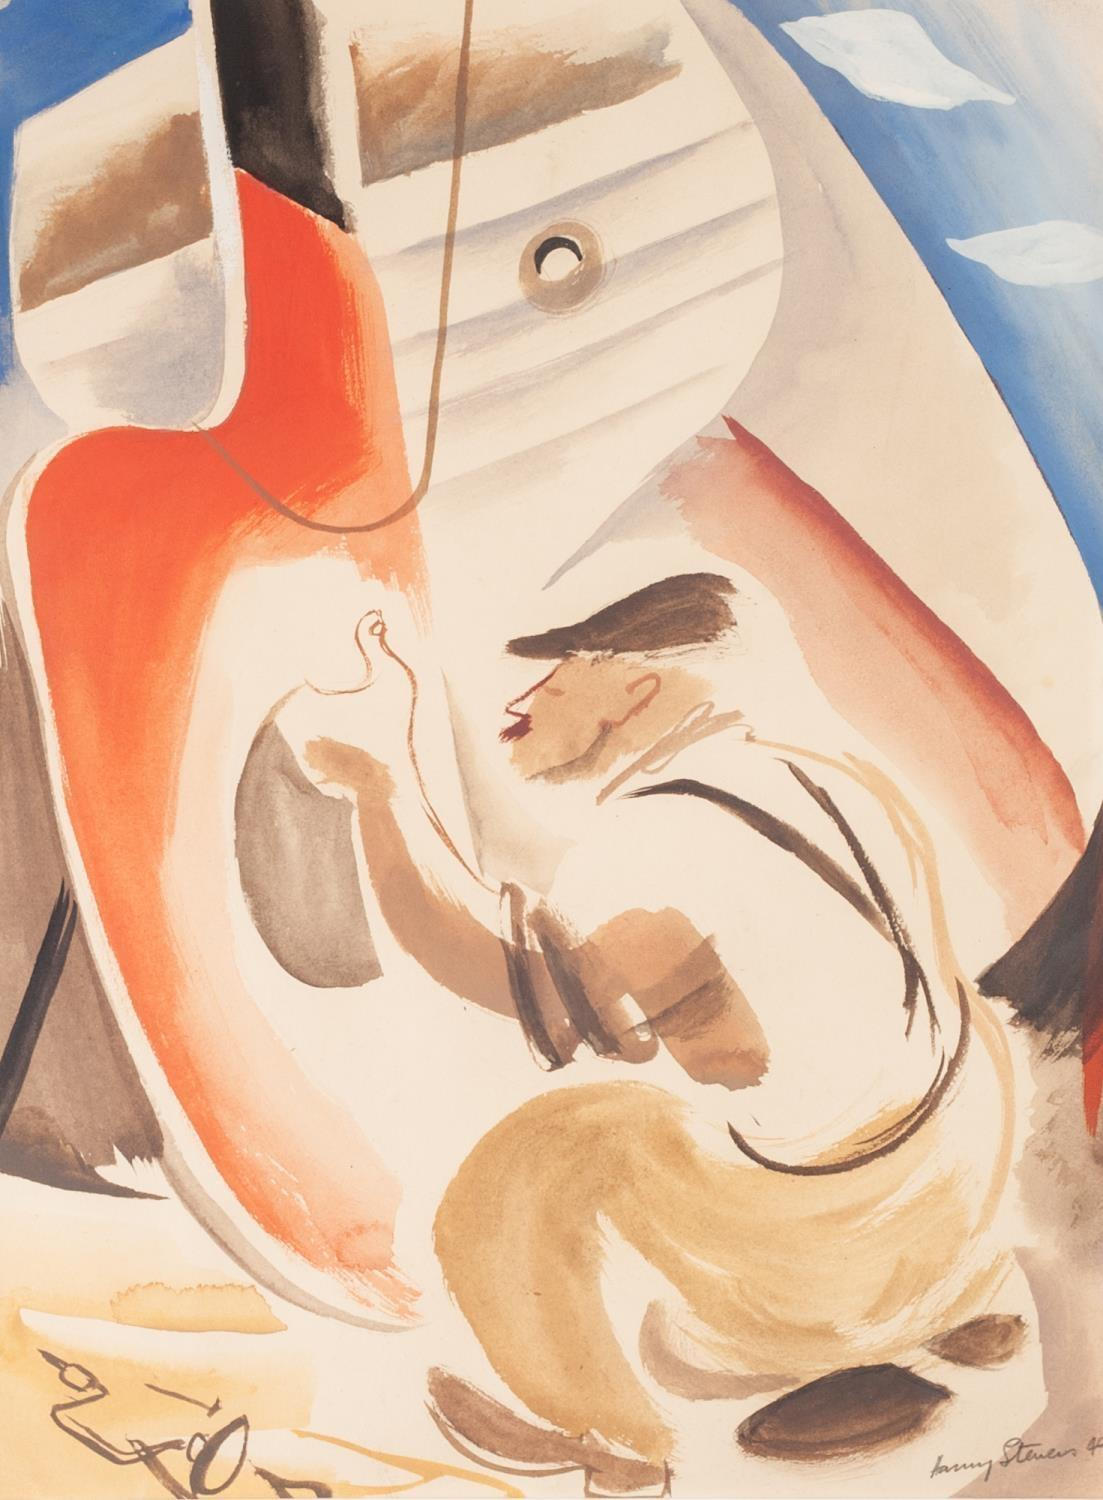 HARRY STEVENS (1919-2008) WATERCOLOUR DRAWING 'The Broken Rudder' Signed and dated (19)49, titled to